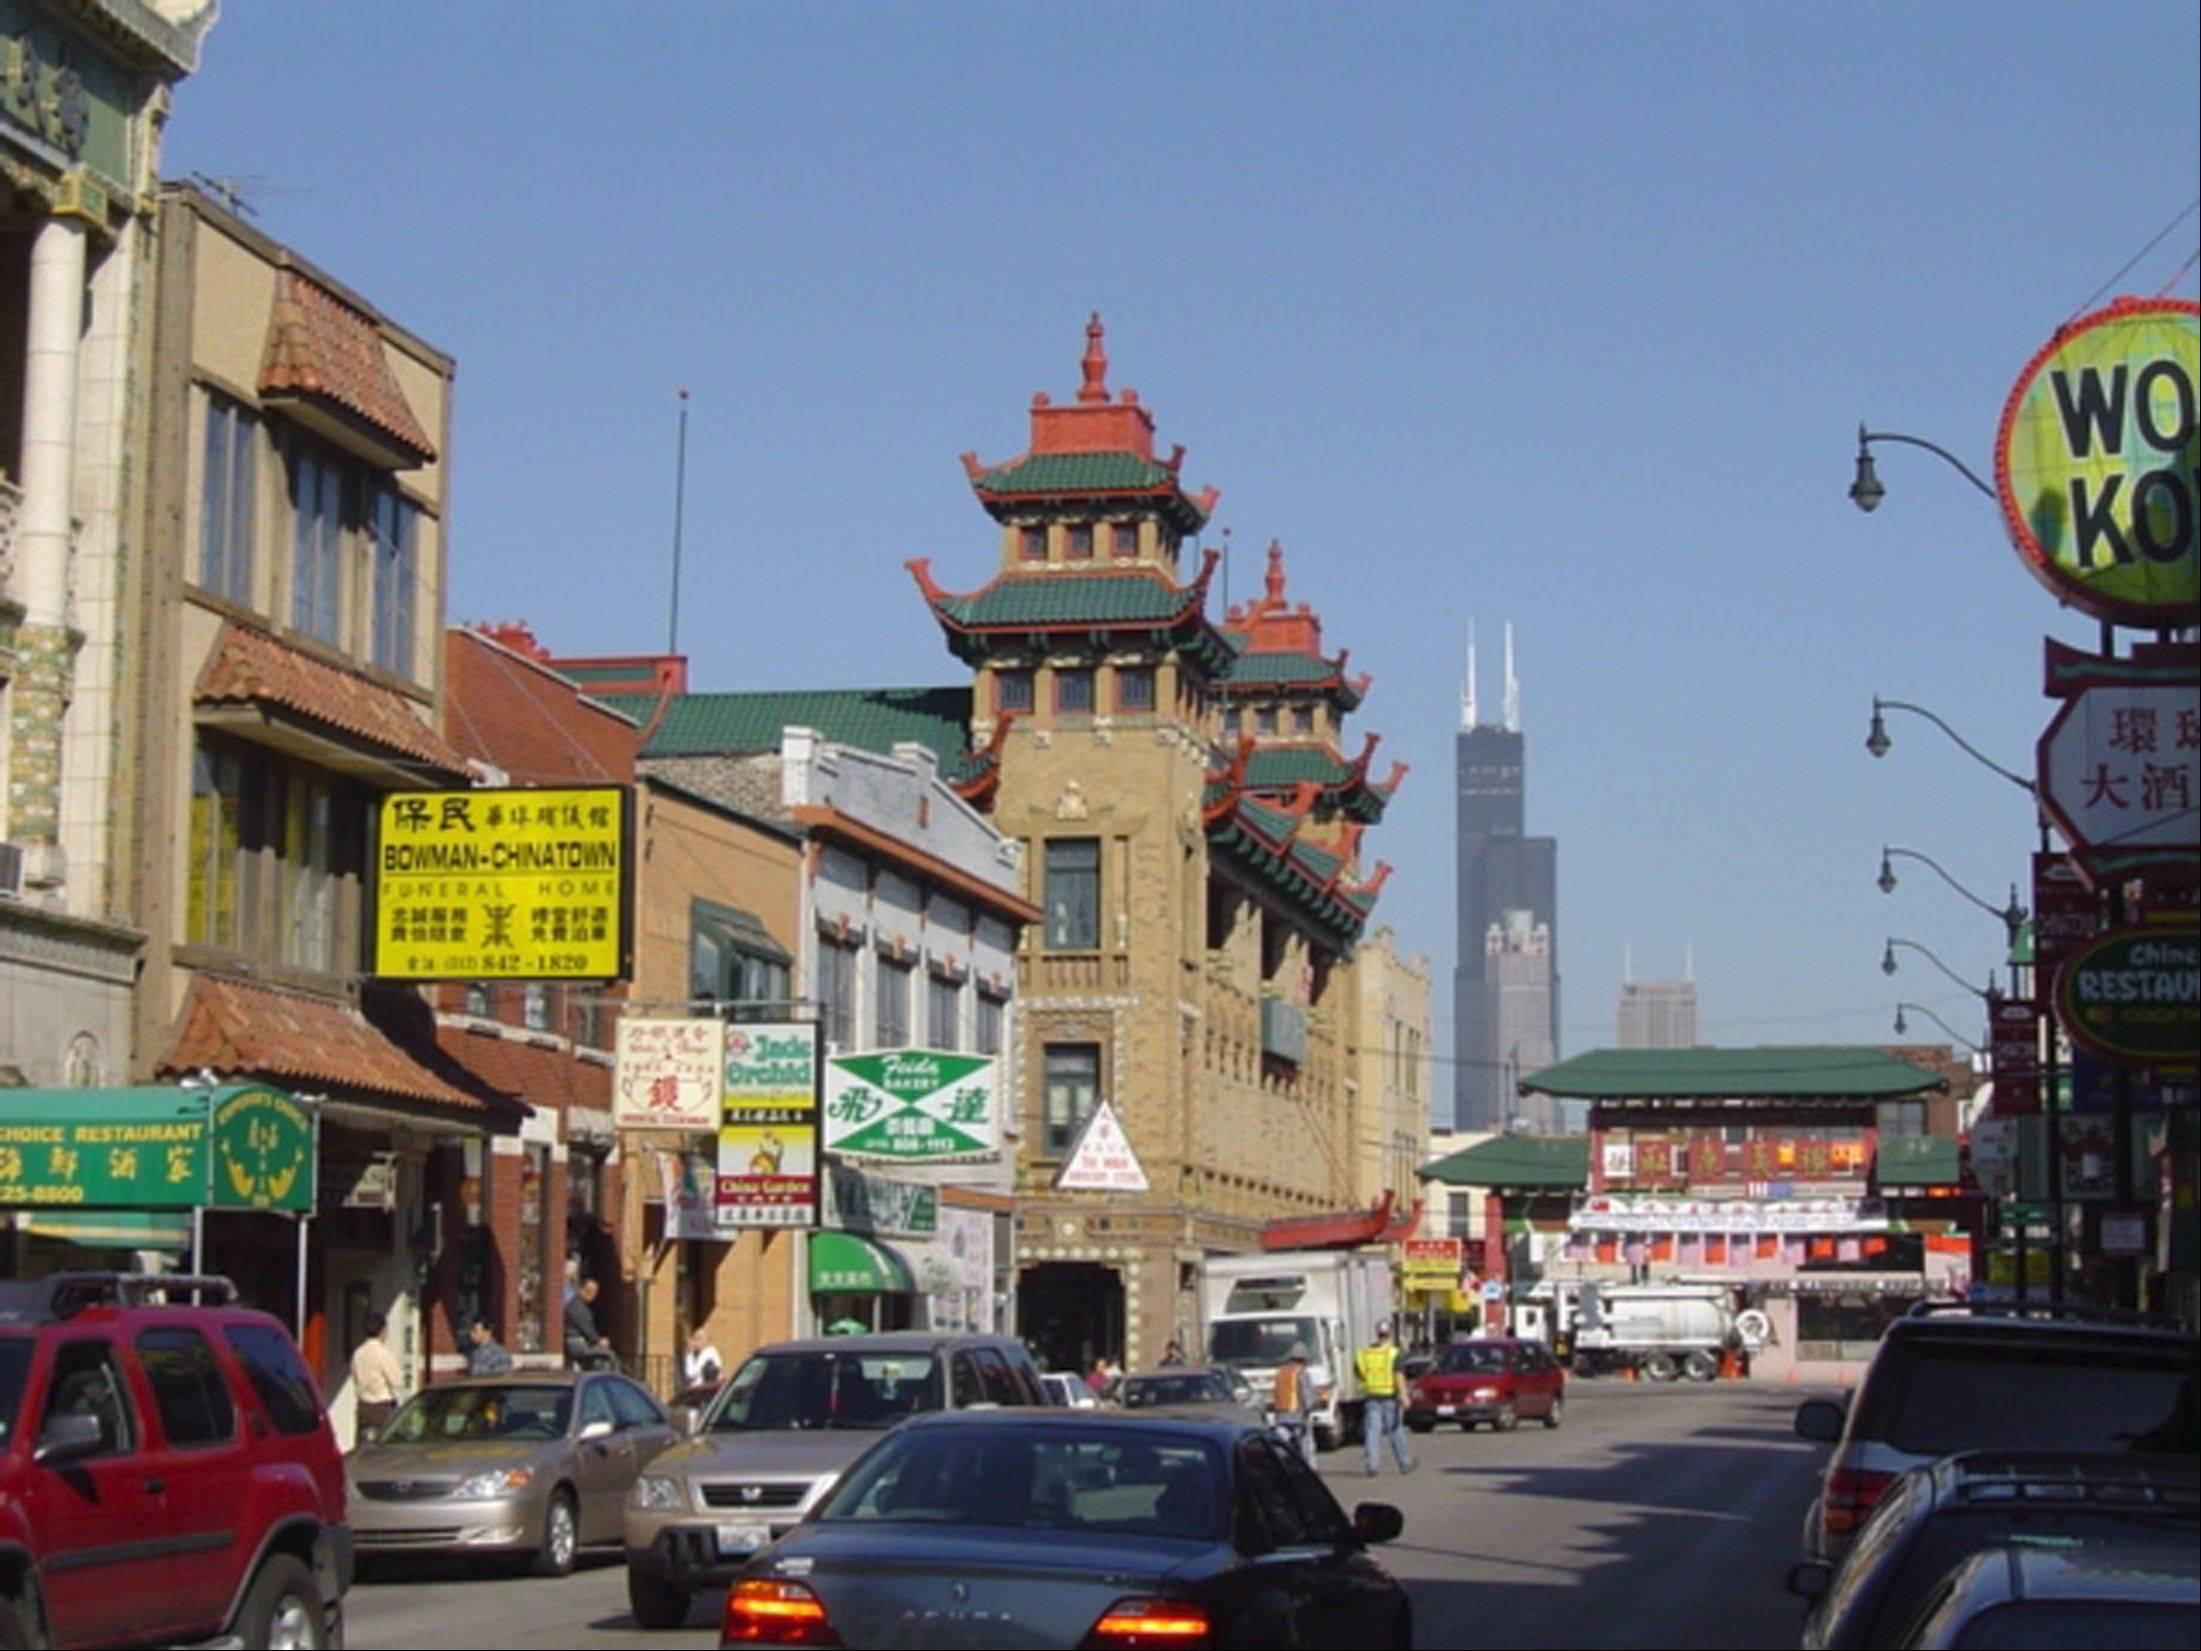 If you've never been to Chinatown, why not try it during spring break?